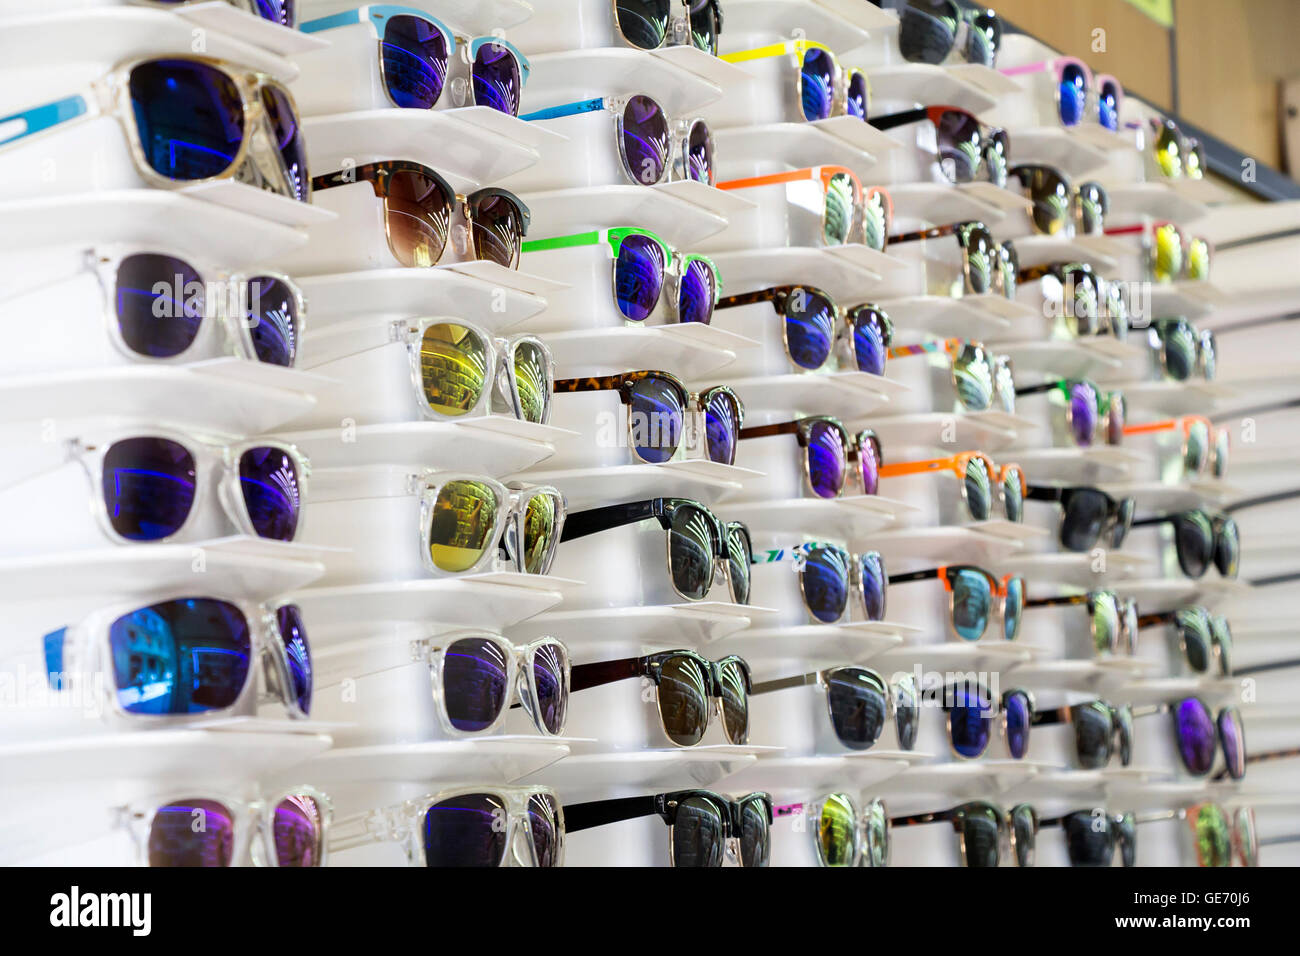 Sunglasses on Sale in the Free Market